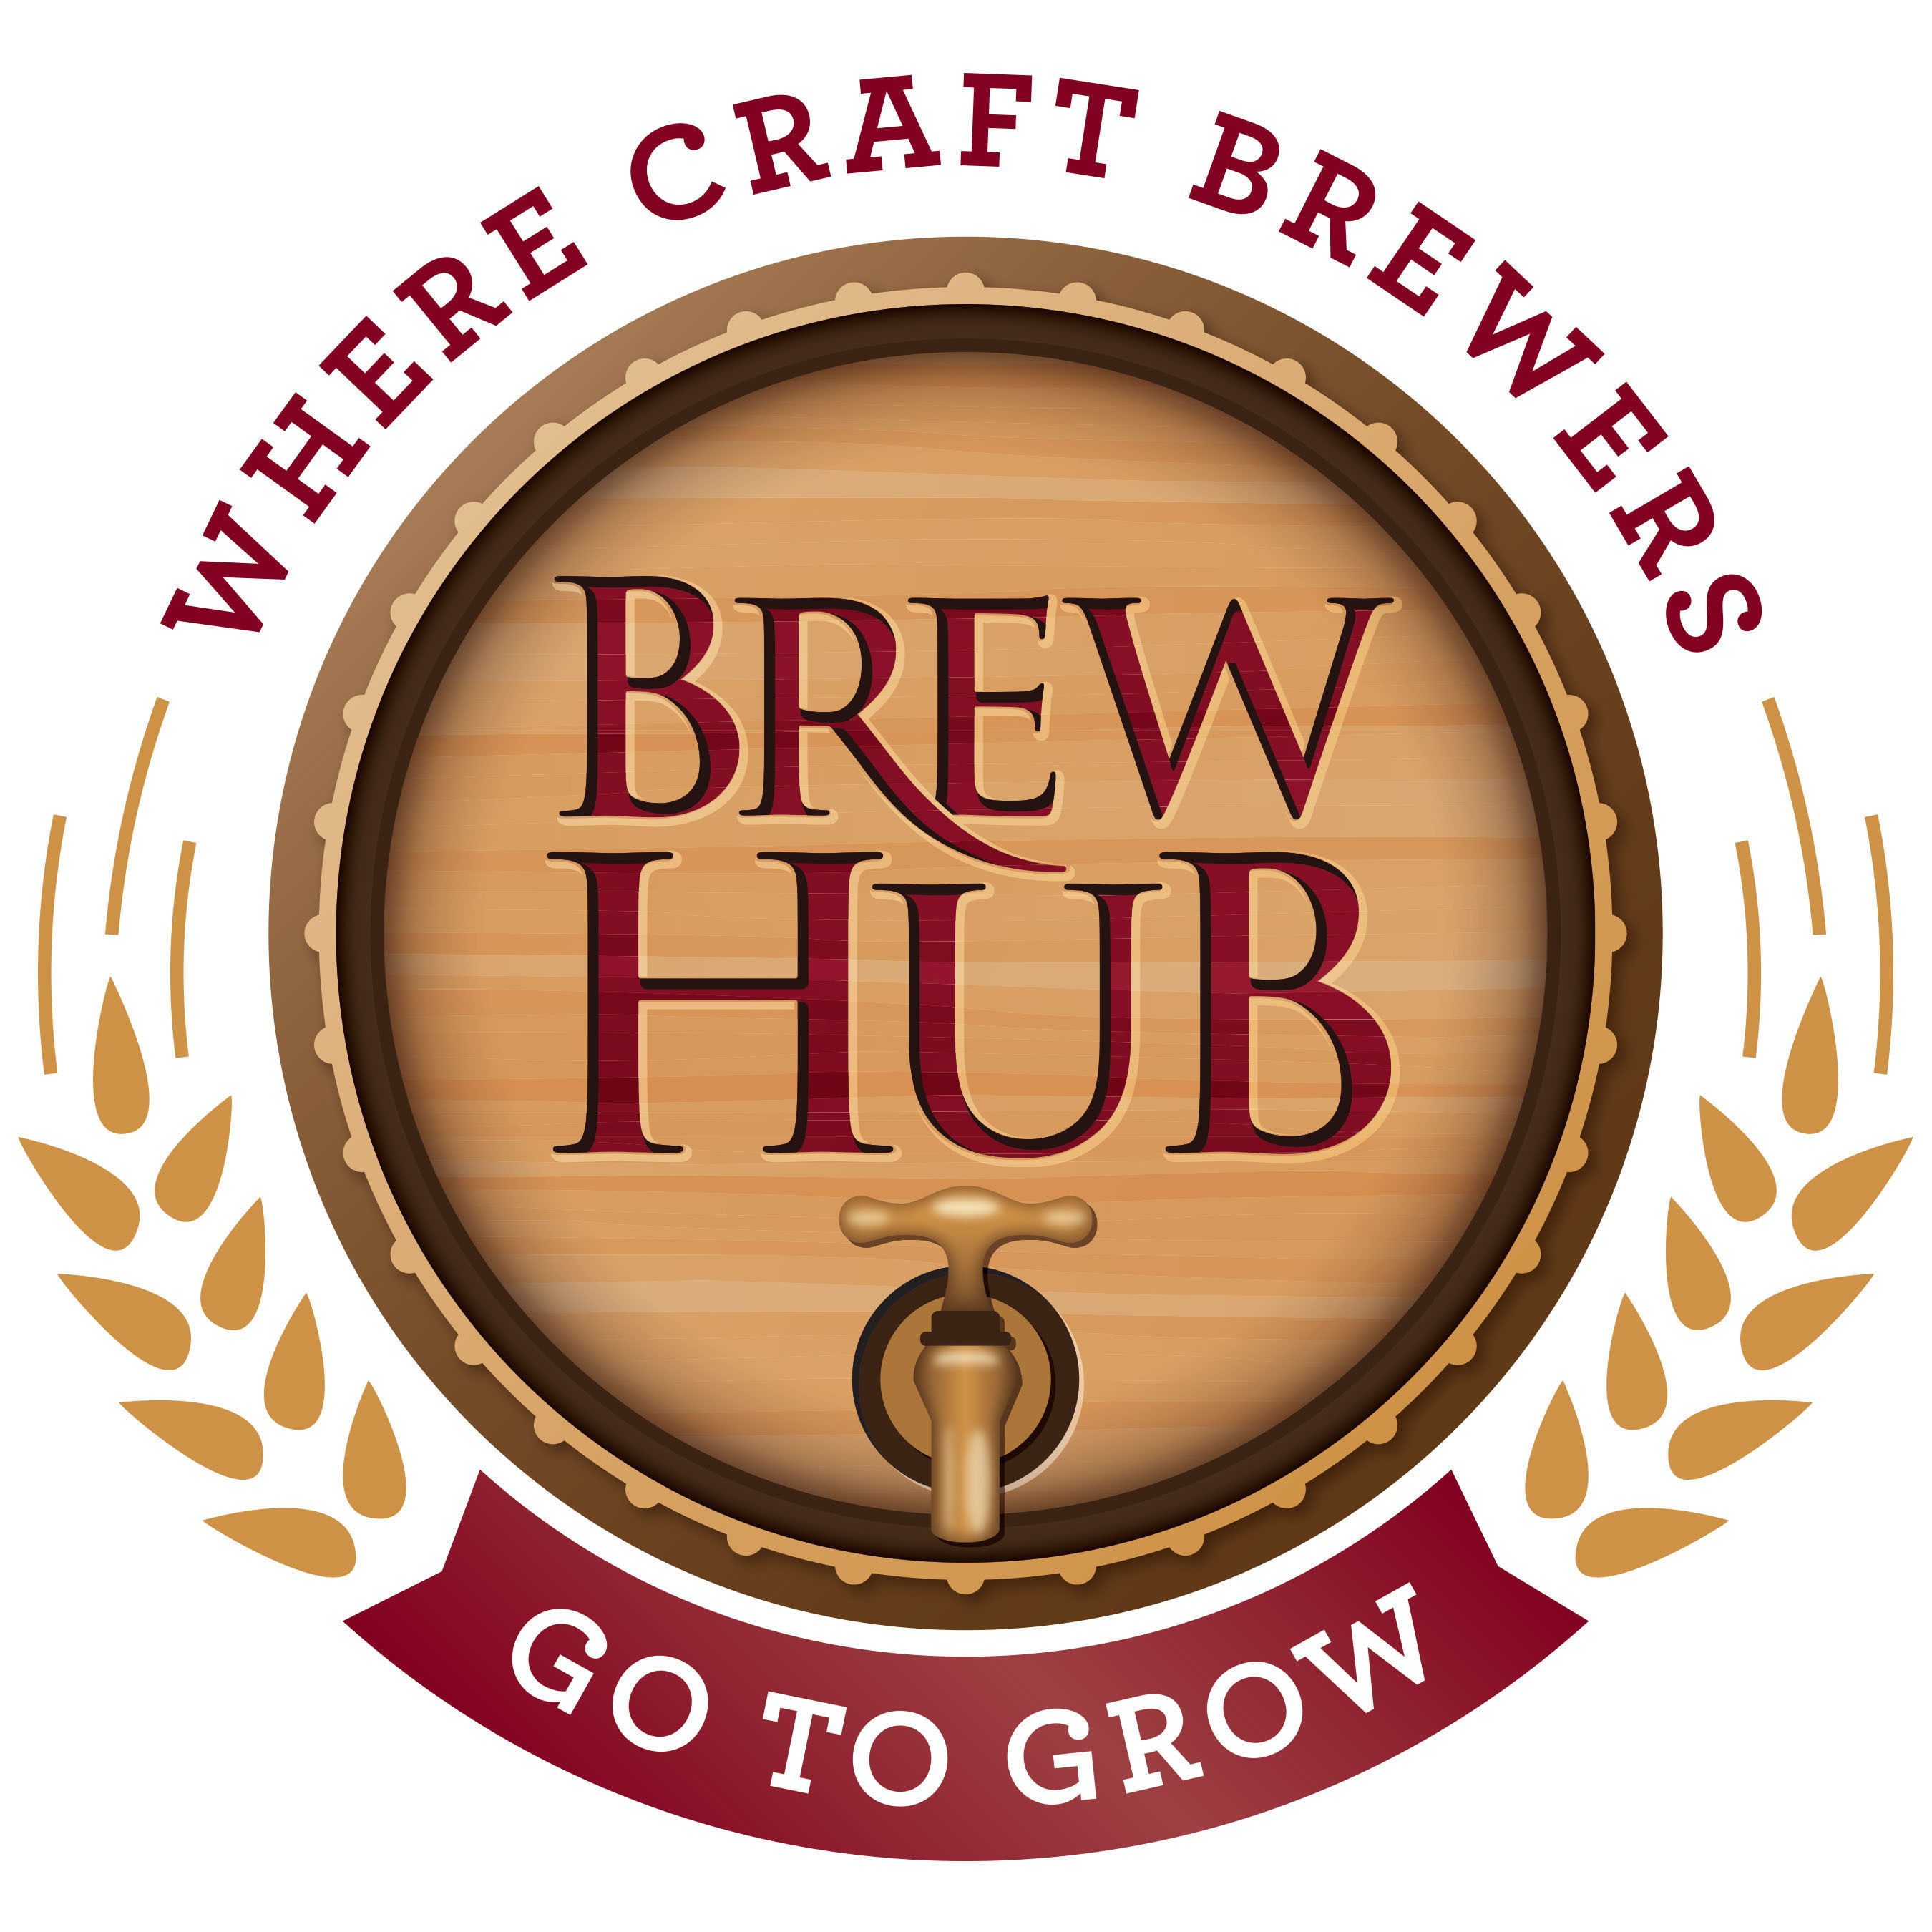 Brew Hub provides full brewing, packaging, distribution and selling services for craft brewers that are constrained by capacity, geography or capital.